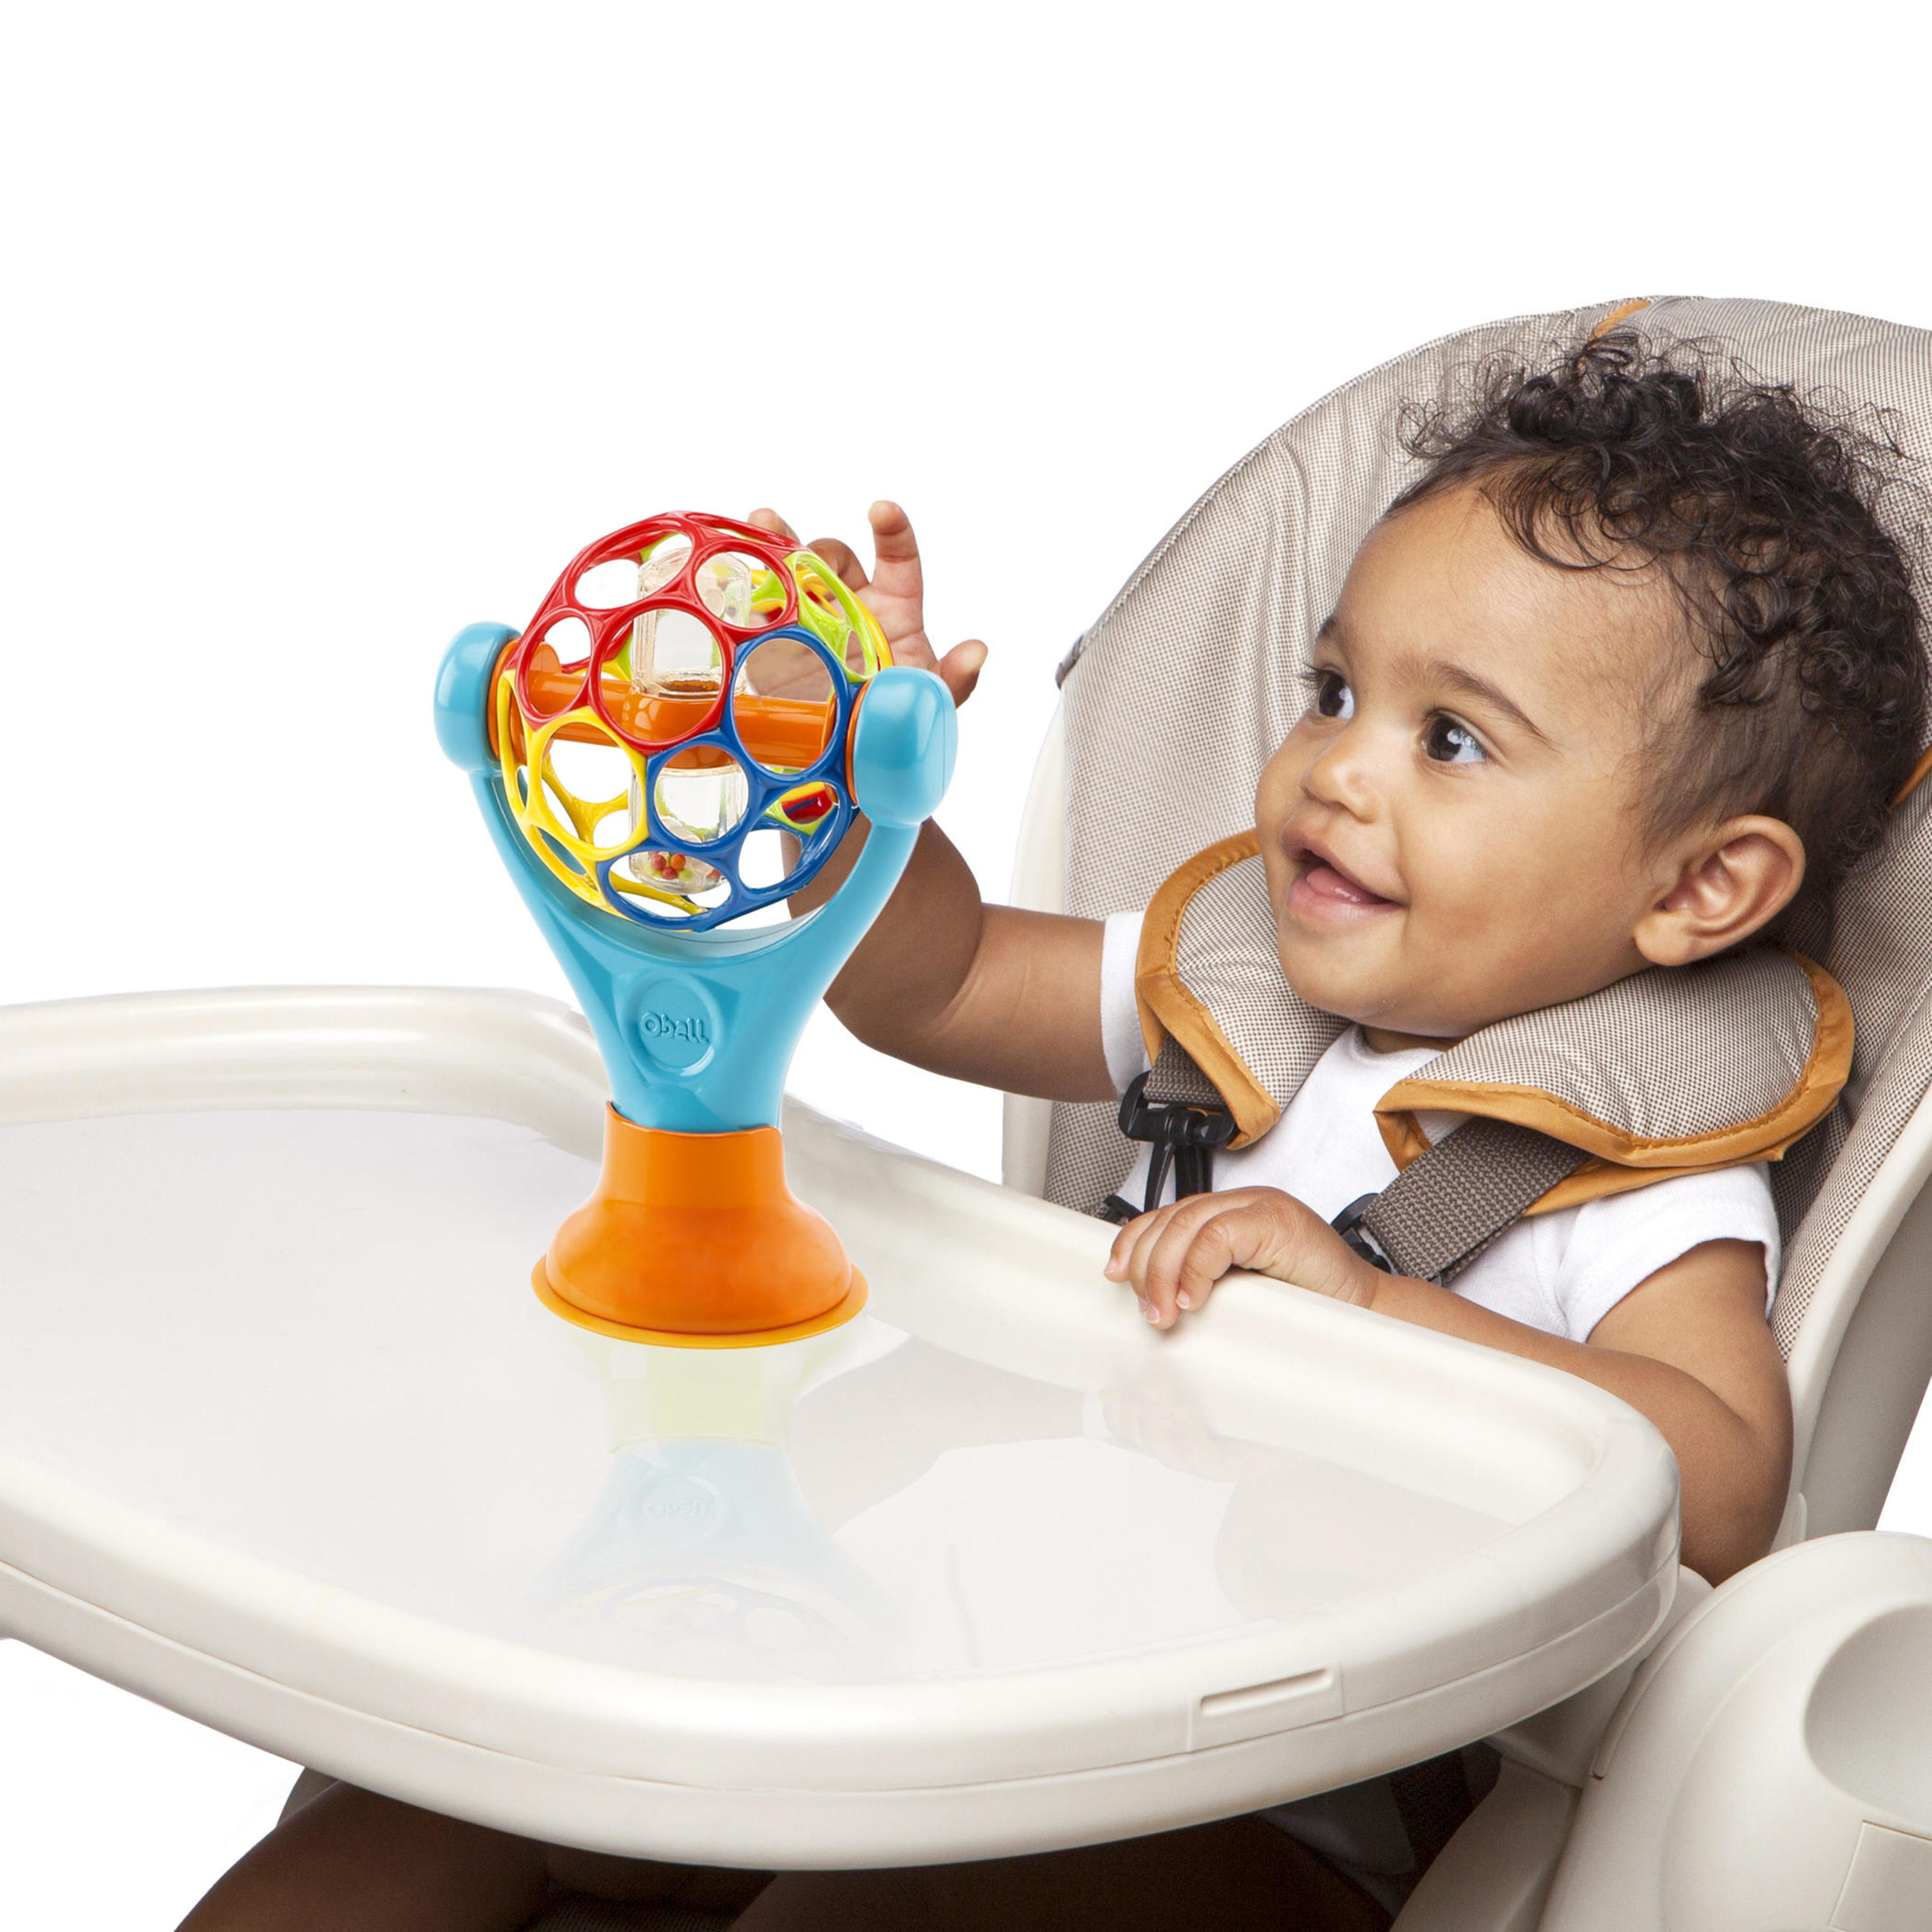 Oball Grip & Play Suction Toy Walmart